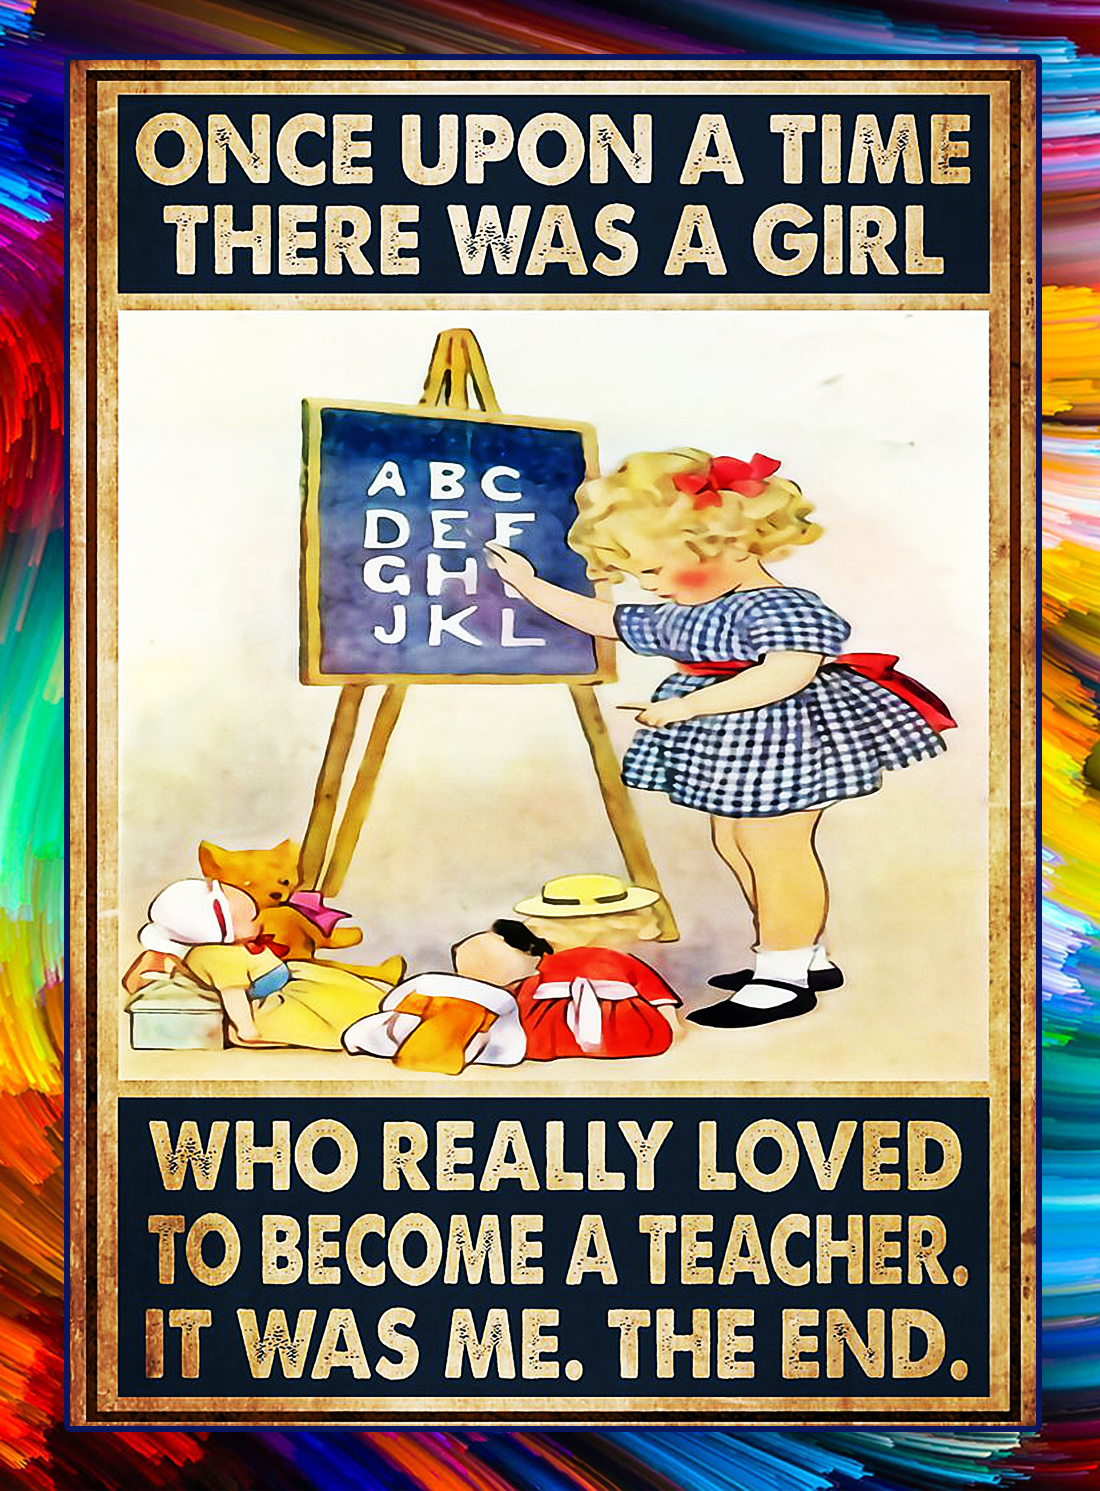 There was a girl who really loved to become a teacher poster - A4